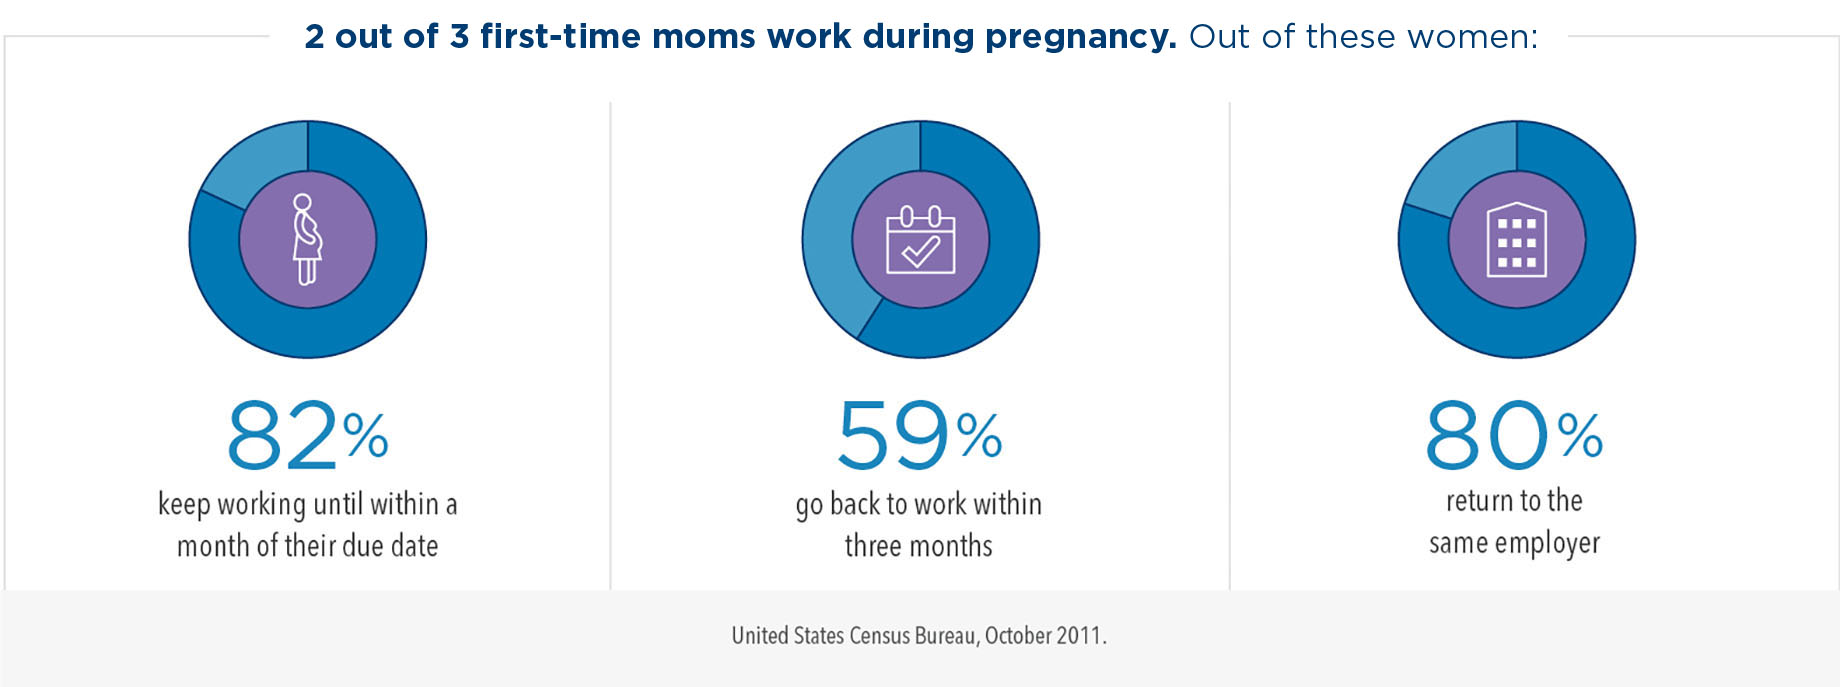 Two out of three first-time moms work during pregnancy. Out of these women, 82% keep working until within a month of their due date, 59% go back to work within three months, and 80% return to the same employer.